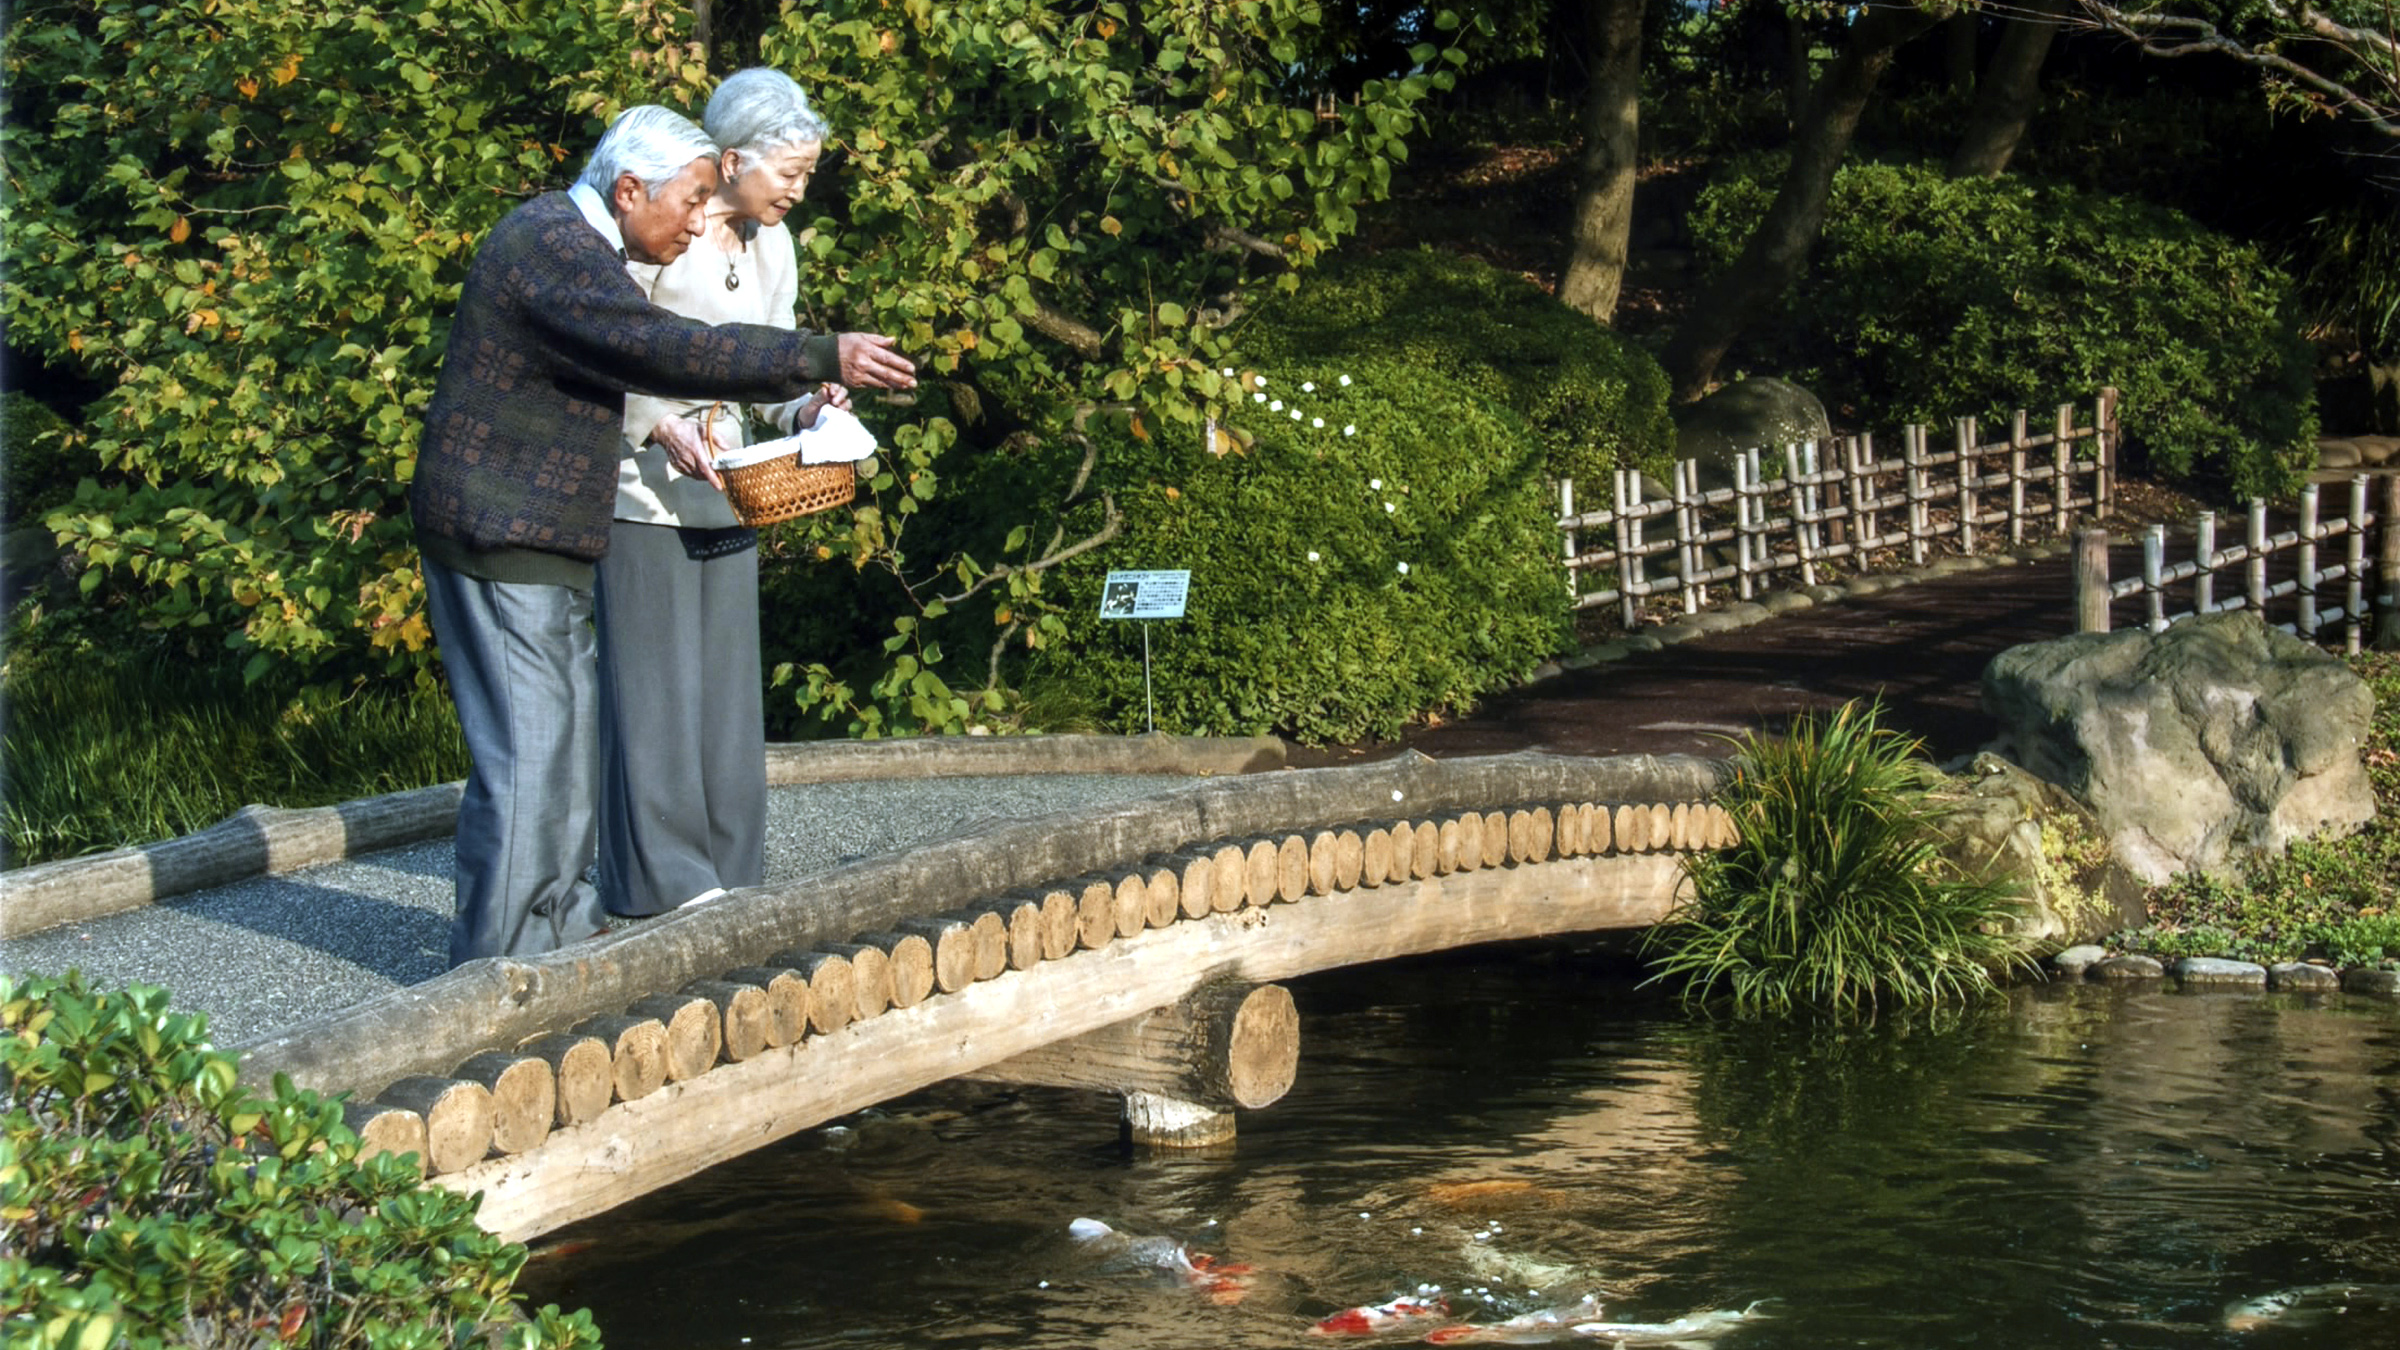 Japan's Emperor Akihito (L) feeds carp in a pond with Empress Michiko in the garden of the Imperial Residence at the Imperial Palace in Tokyo, in this handout picture taken October 27, 2014 and released by the Imperial Household Agency of Japan. Emperor Akihito celebrates his 81st birthday on December 23, 2014. Picture taken October 27, 2014. REUTERS/Imperial Household Agency of Japan/Handout via Reuters (JAPAN - Tags: ROYALS ANNIVERSARY)